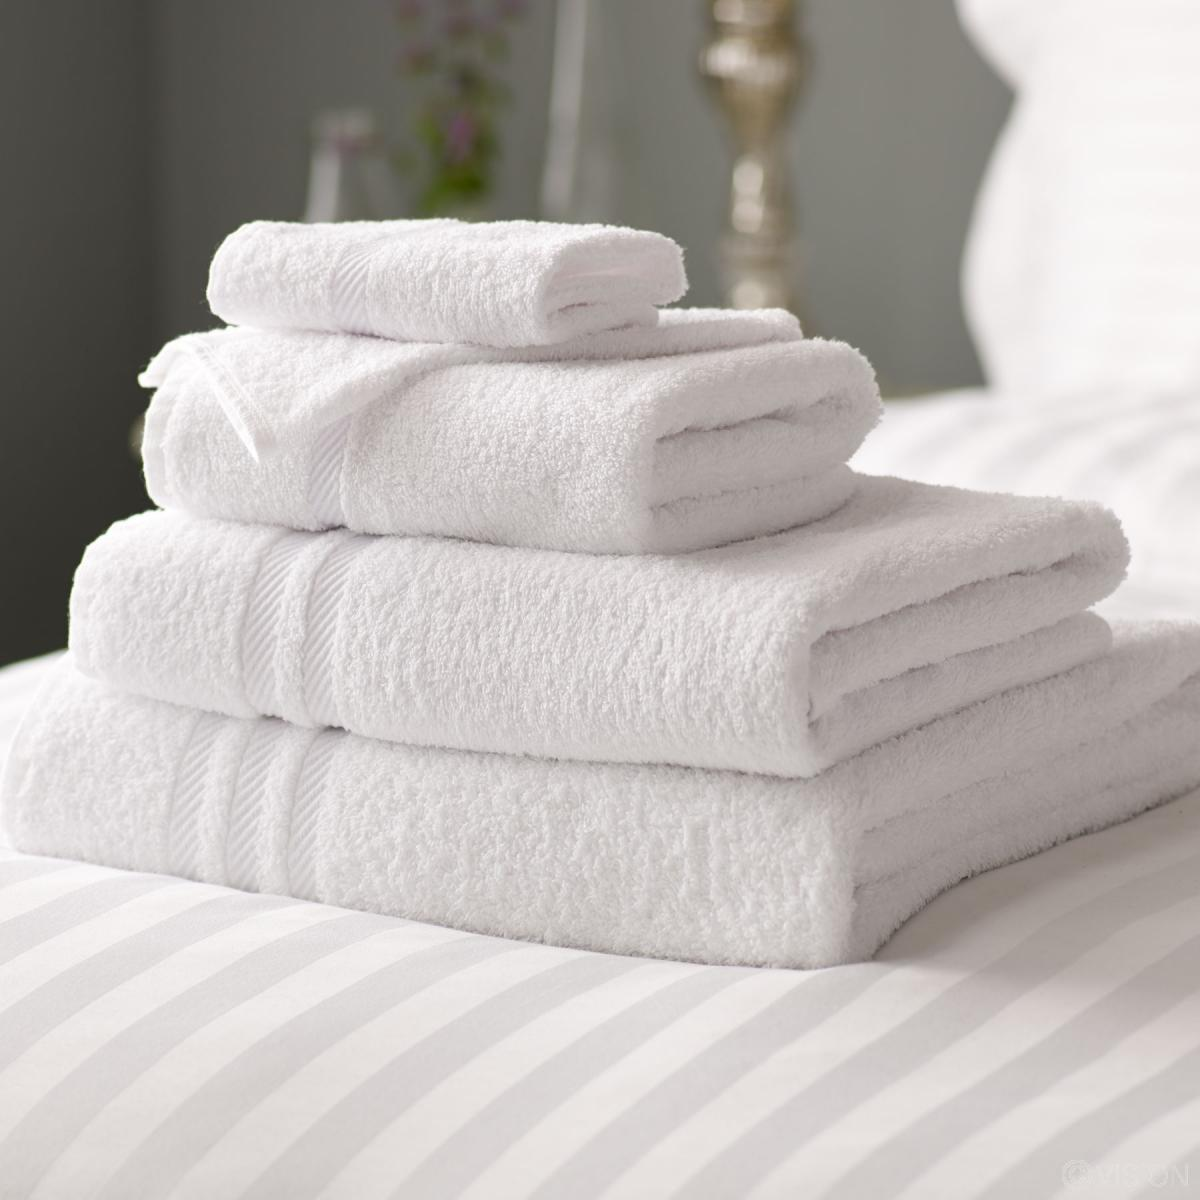 Quality Lowry Cotton Bath Towels In Packs Of 5 Bulk Towels Vision